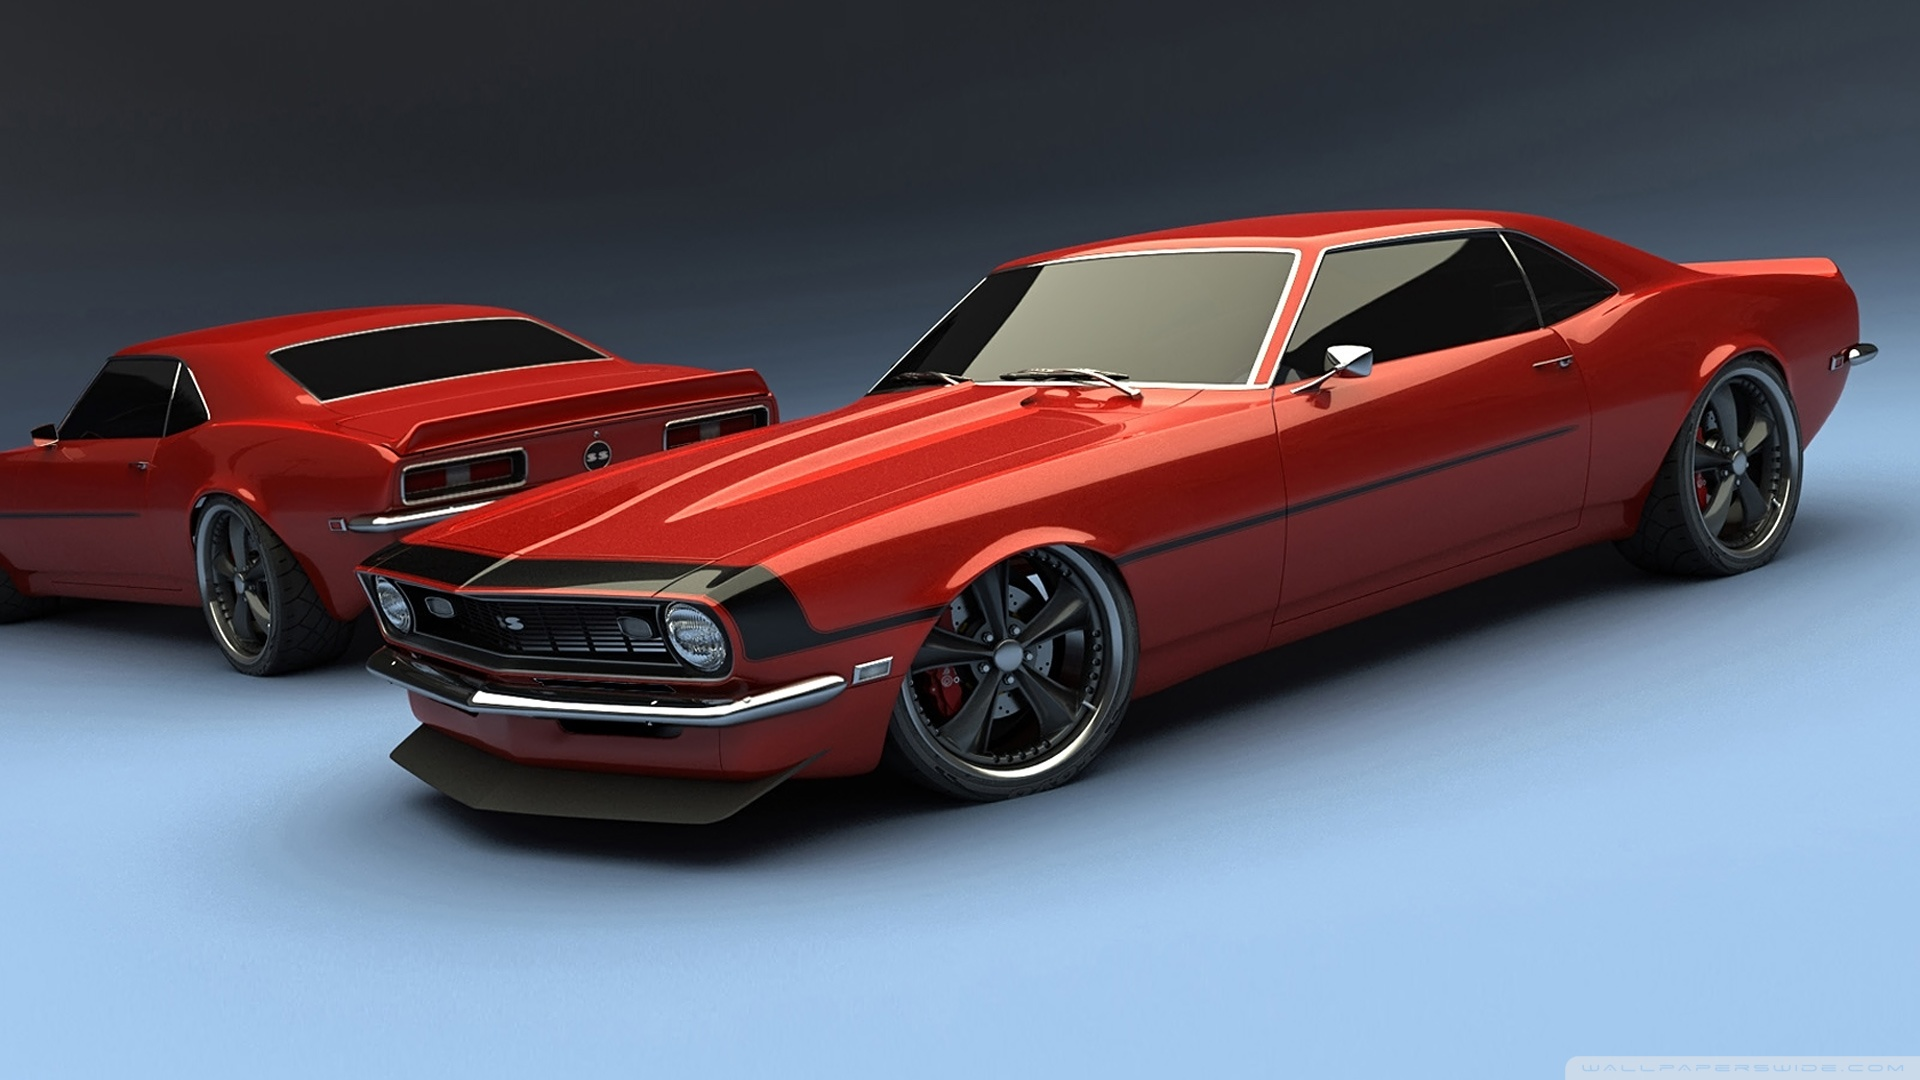 Chevy Camaro Classic Cars Hd Desktop Wallpaper Widescreen High